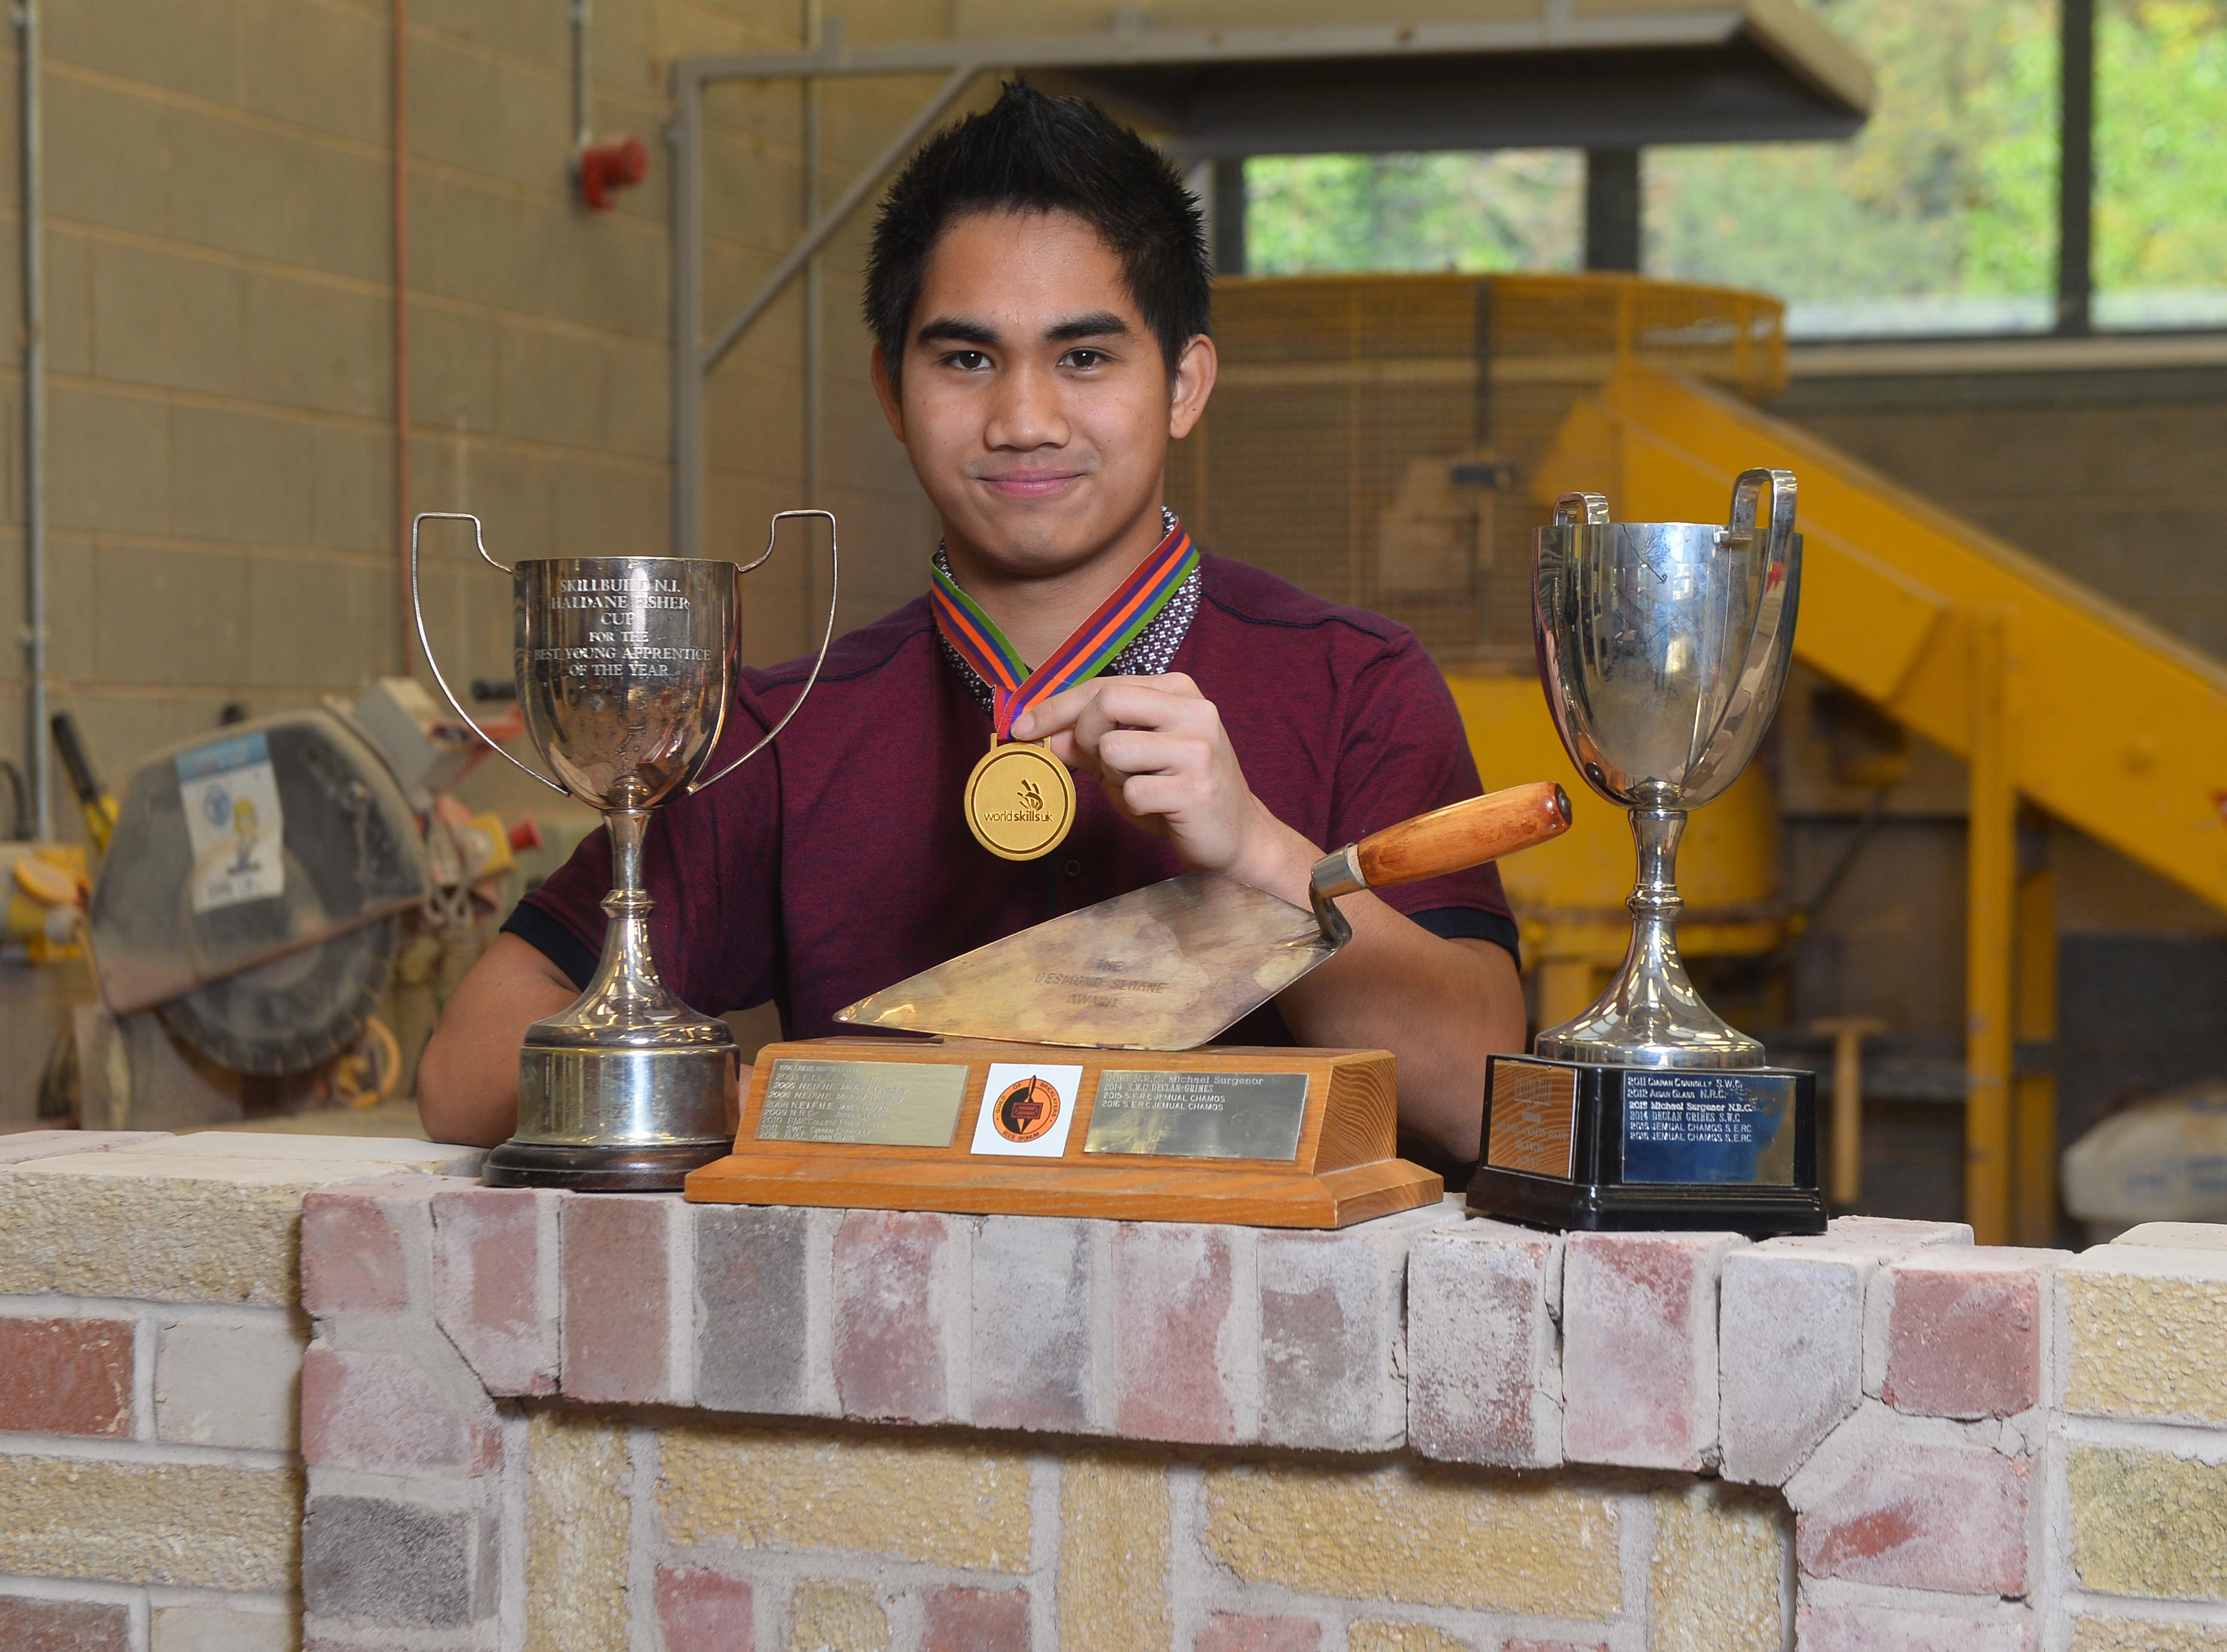 Bricklaying Uk's National Worldskills